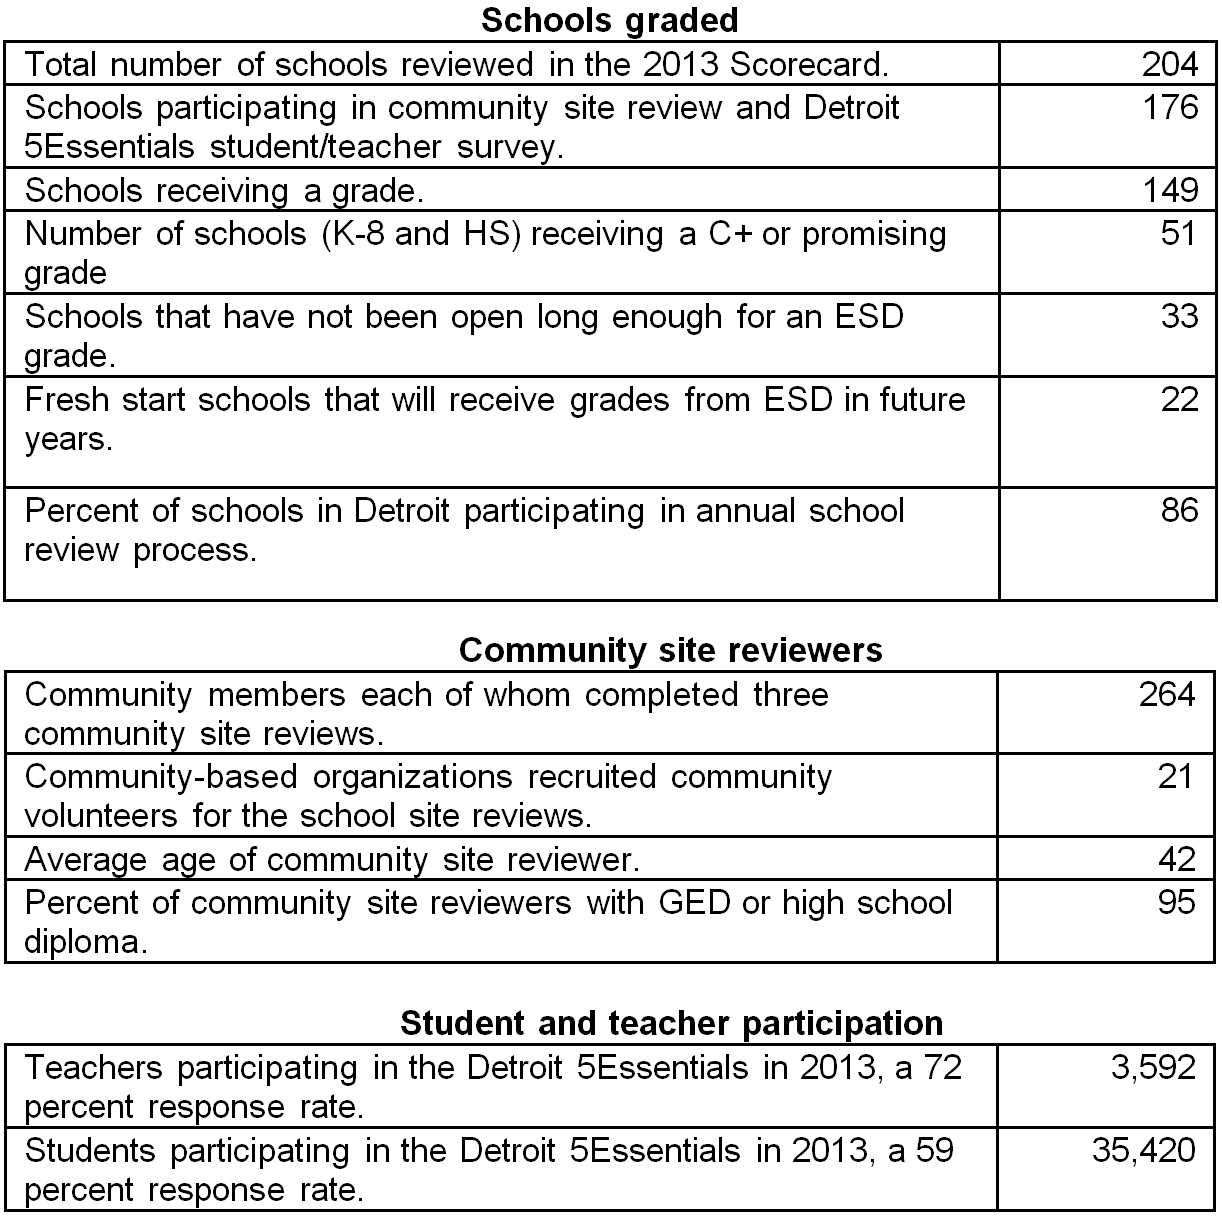 Data source: Excellent Schools Detroit, July 2013, including data from the Detroit 5Essentials, which is collected by the University of Chicago's Urban Education Institute.